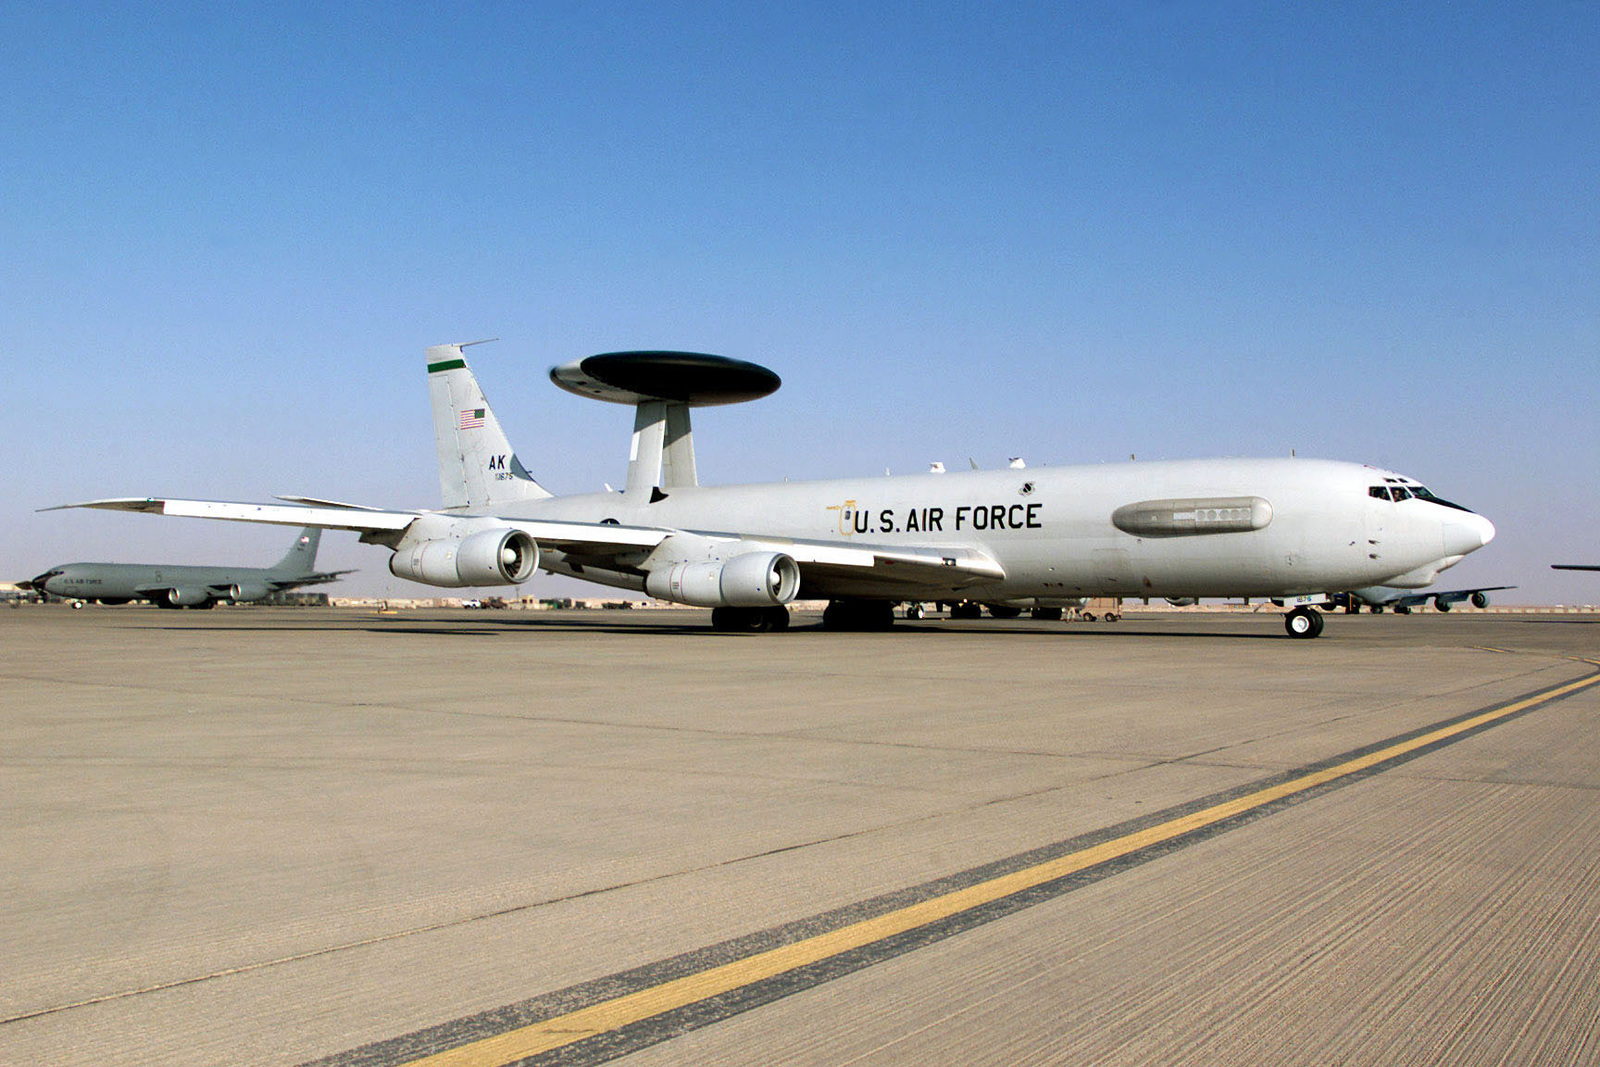 A US Air Force E-3 Airborne Warning and Control System (AWACS) from the 944th Airborne Air Control Squadron, Tinker Air Force Base, Oklahoma, taxis down the North ramp prior to a mission at Prince Sultan Air Base, Saudi Arabia. This aircraft is a part of the coalition forces of the 363rd Air Expeditionary Wing that enforces the no-fly and no-drive zone in Southern Iraq to protect and defend against Iraqi aggression. This mission is in direct support of Operation SOUTHERN WATCH